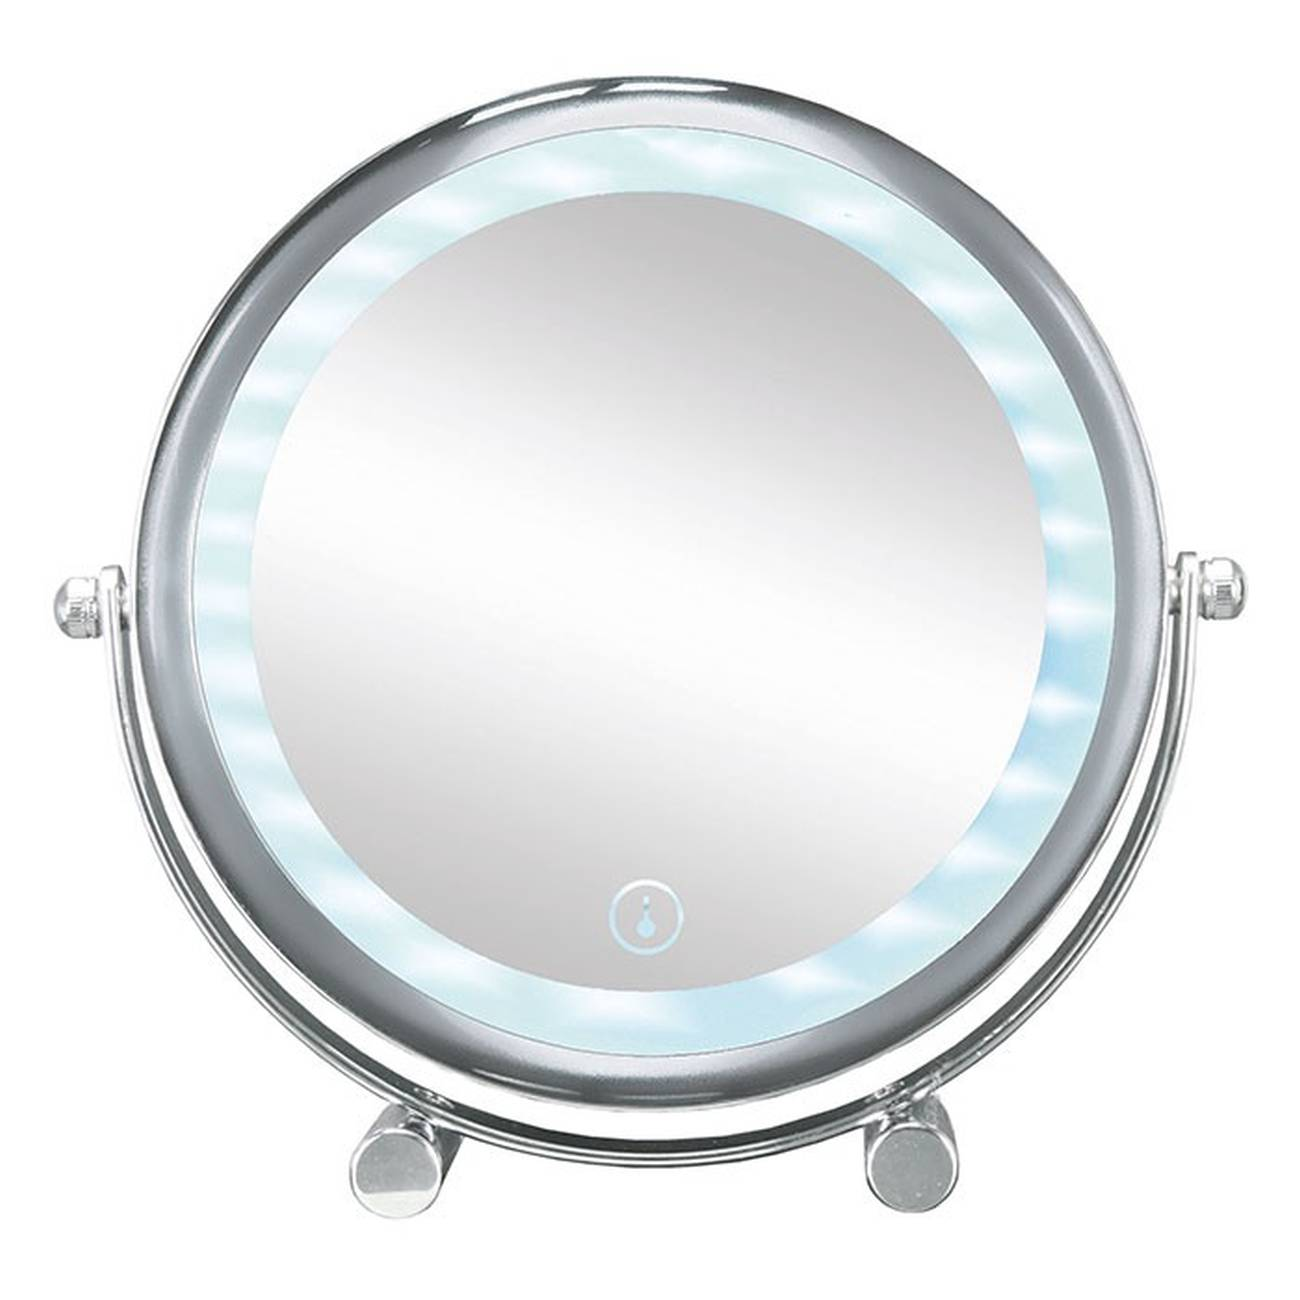 Kosmetikspiegel Bright Mirror Shorty Metall chromiert/Glas/LED Silber Spiegel